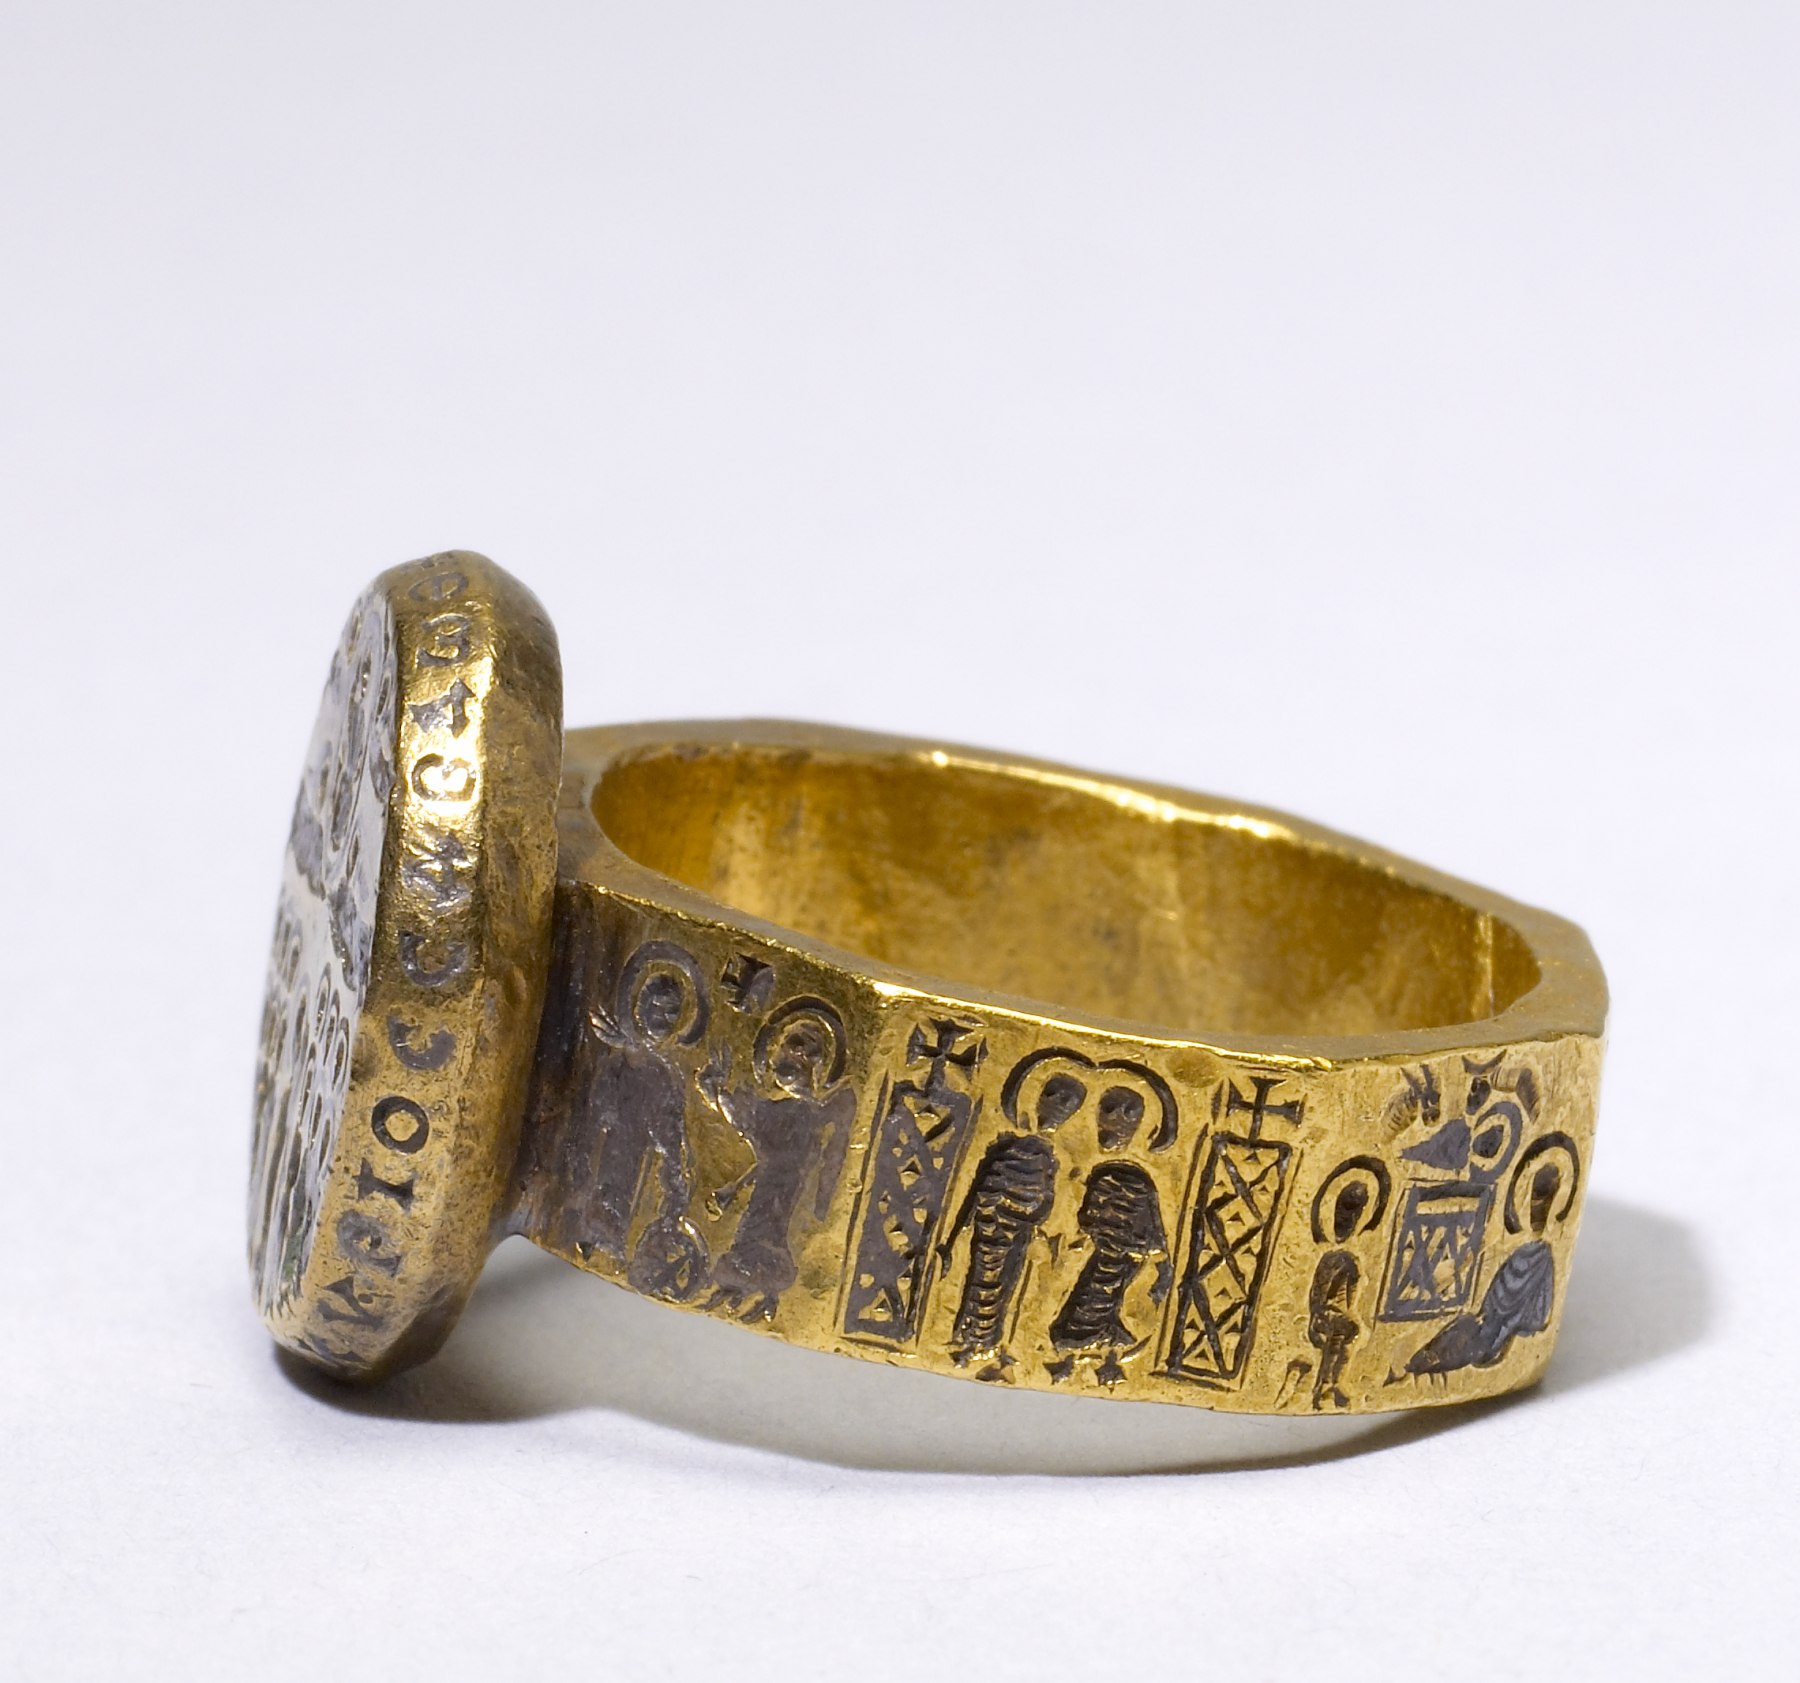 FileByzantine Marriage Ring With Scenes From The Life